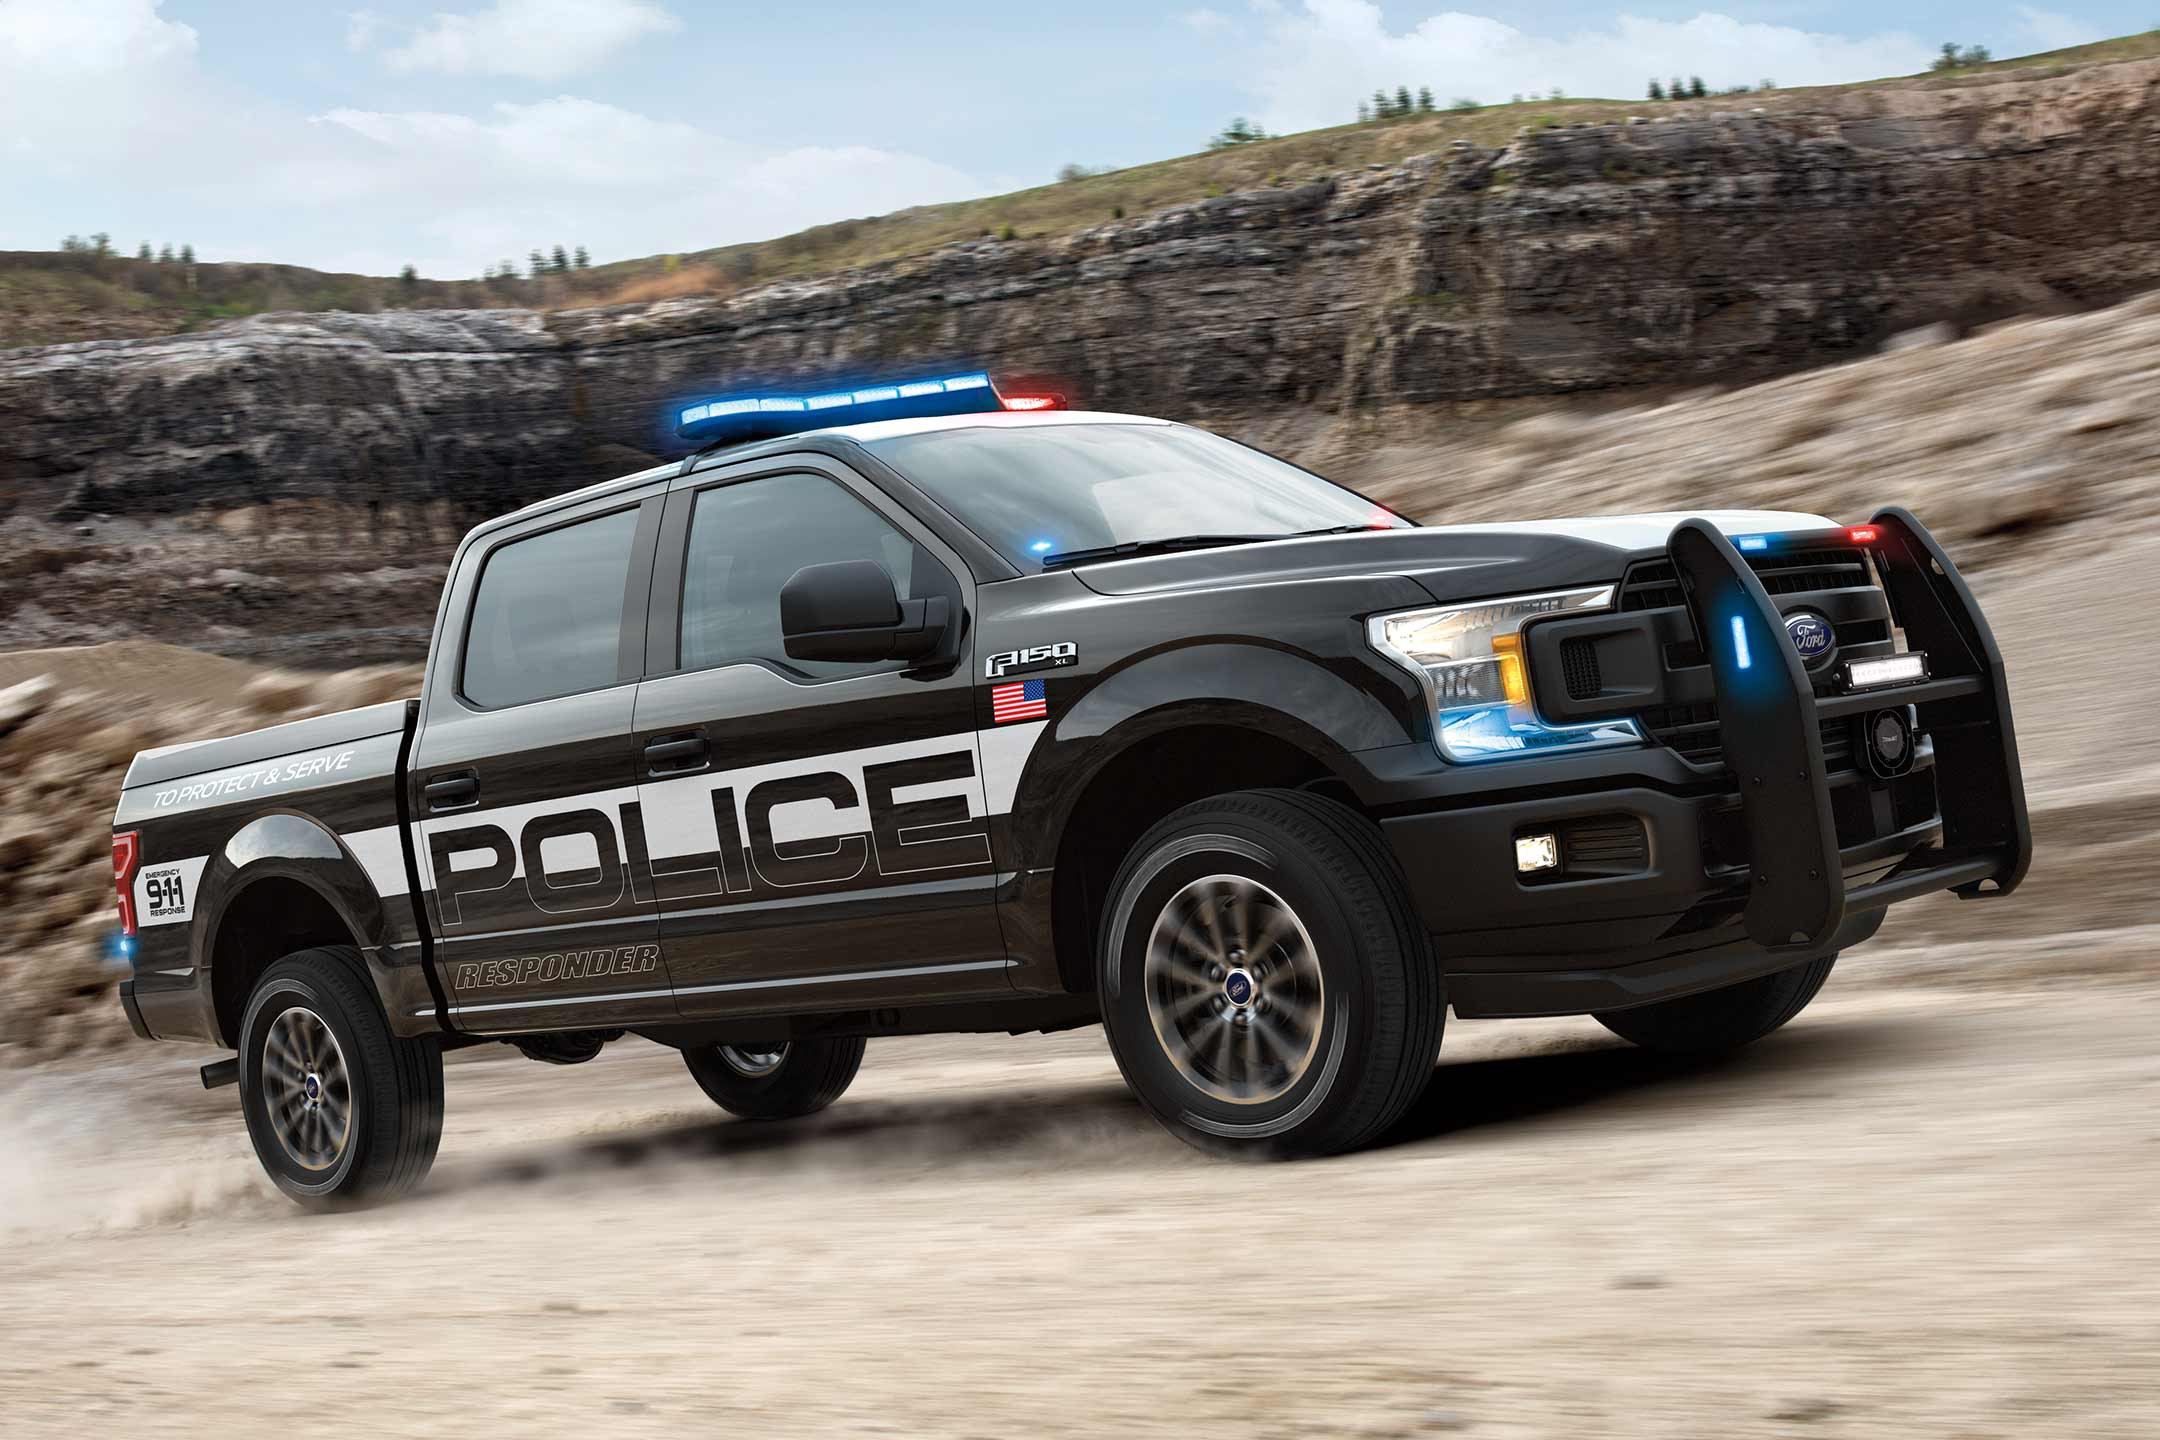 POLICE FULL SIZE DOUBLE CAB